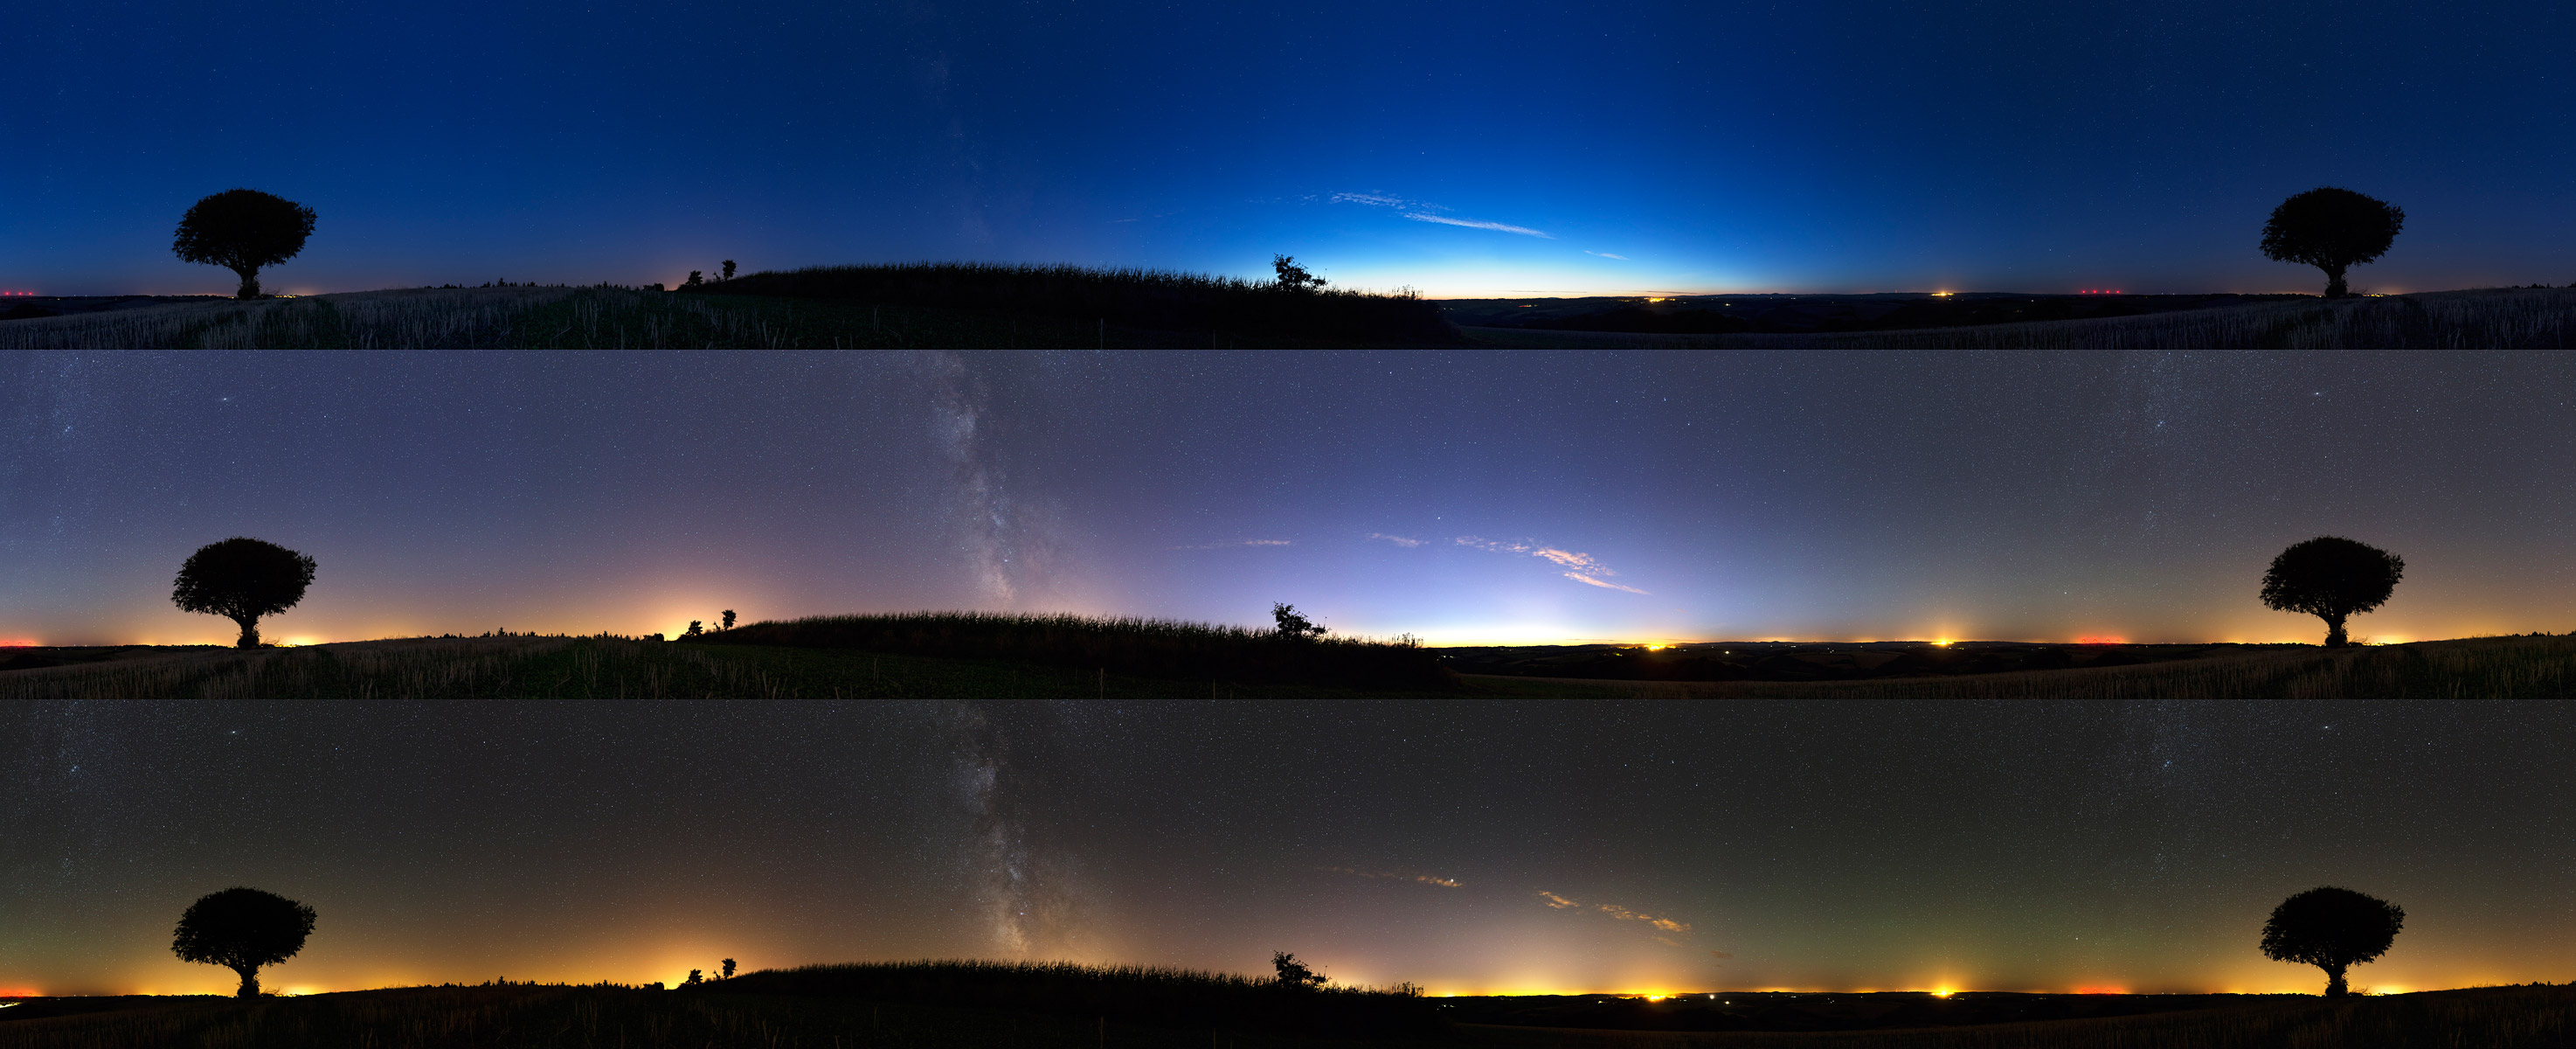 During the astronomical twilight